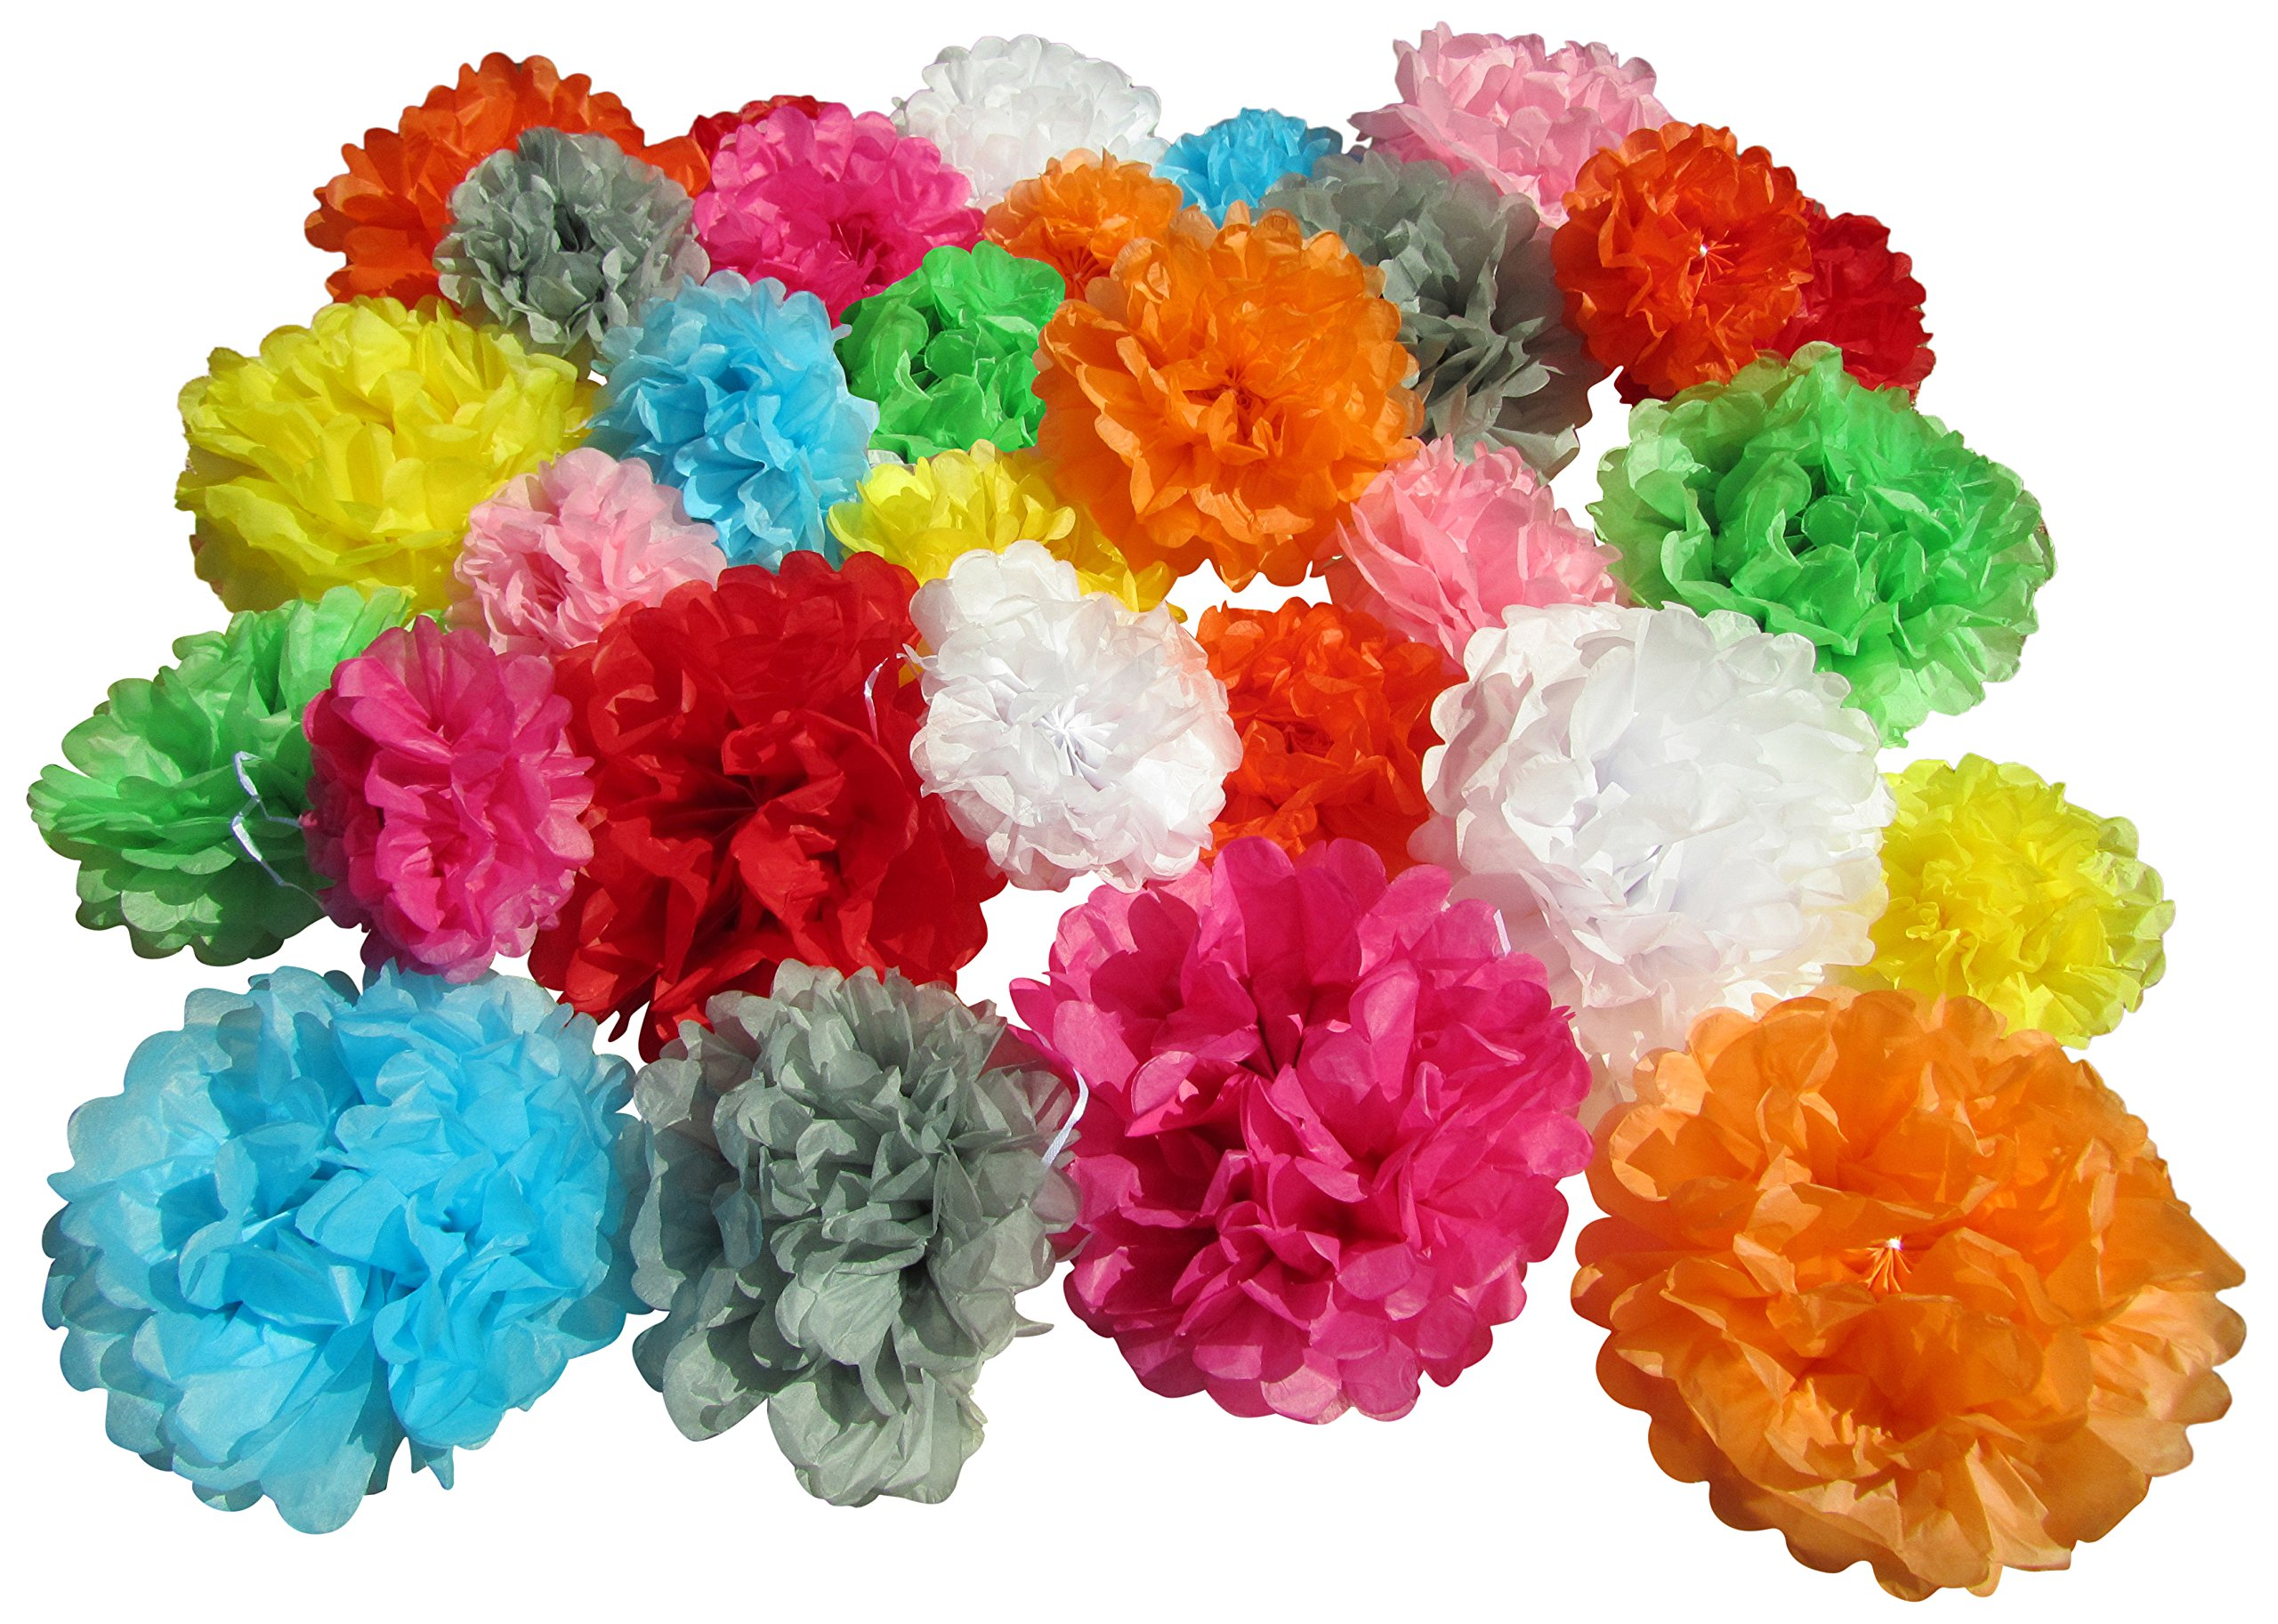 Tissue Paper Pom Poms - Set of 30 Pcs - Pre Folded Paper Decoration for Party Wedding Birthday Bridal Baby Showers Mexican Fiesta Flowers - 6 8 10 Inch - 10 Mixed Colors by Use4Party